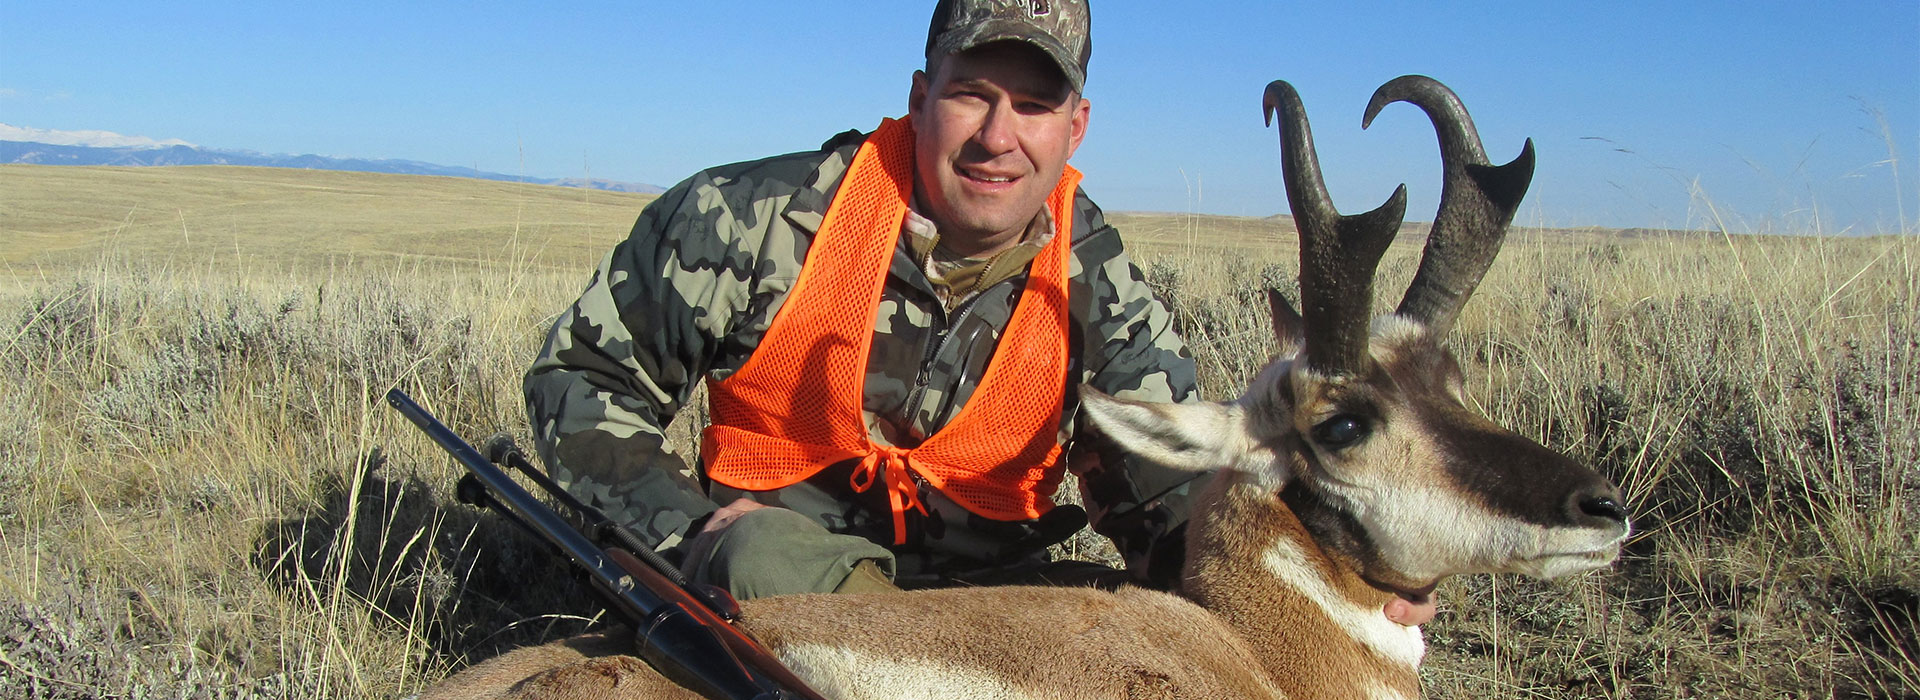 Wyoming Antelope Hunts on Private Land (Archery & Rifle)